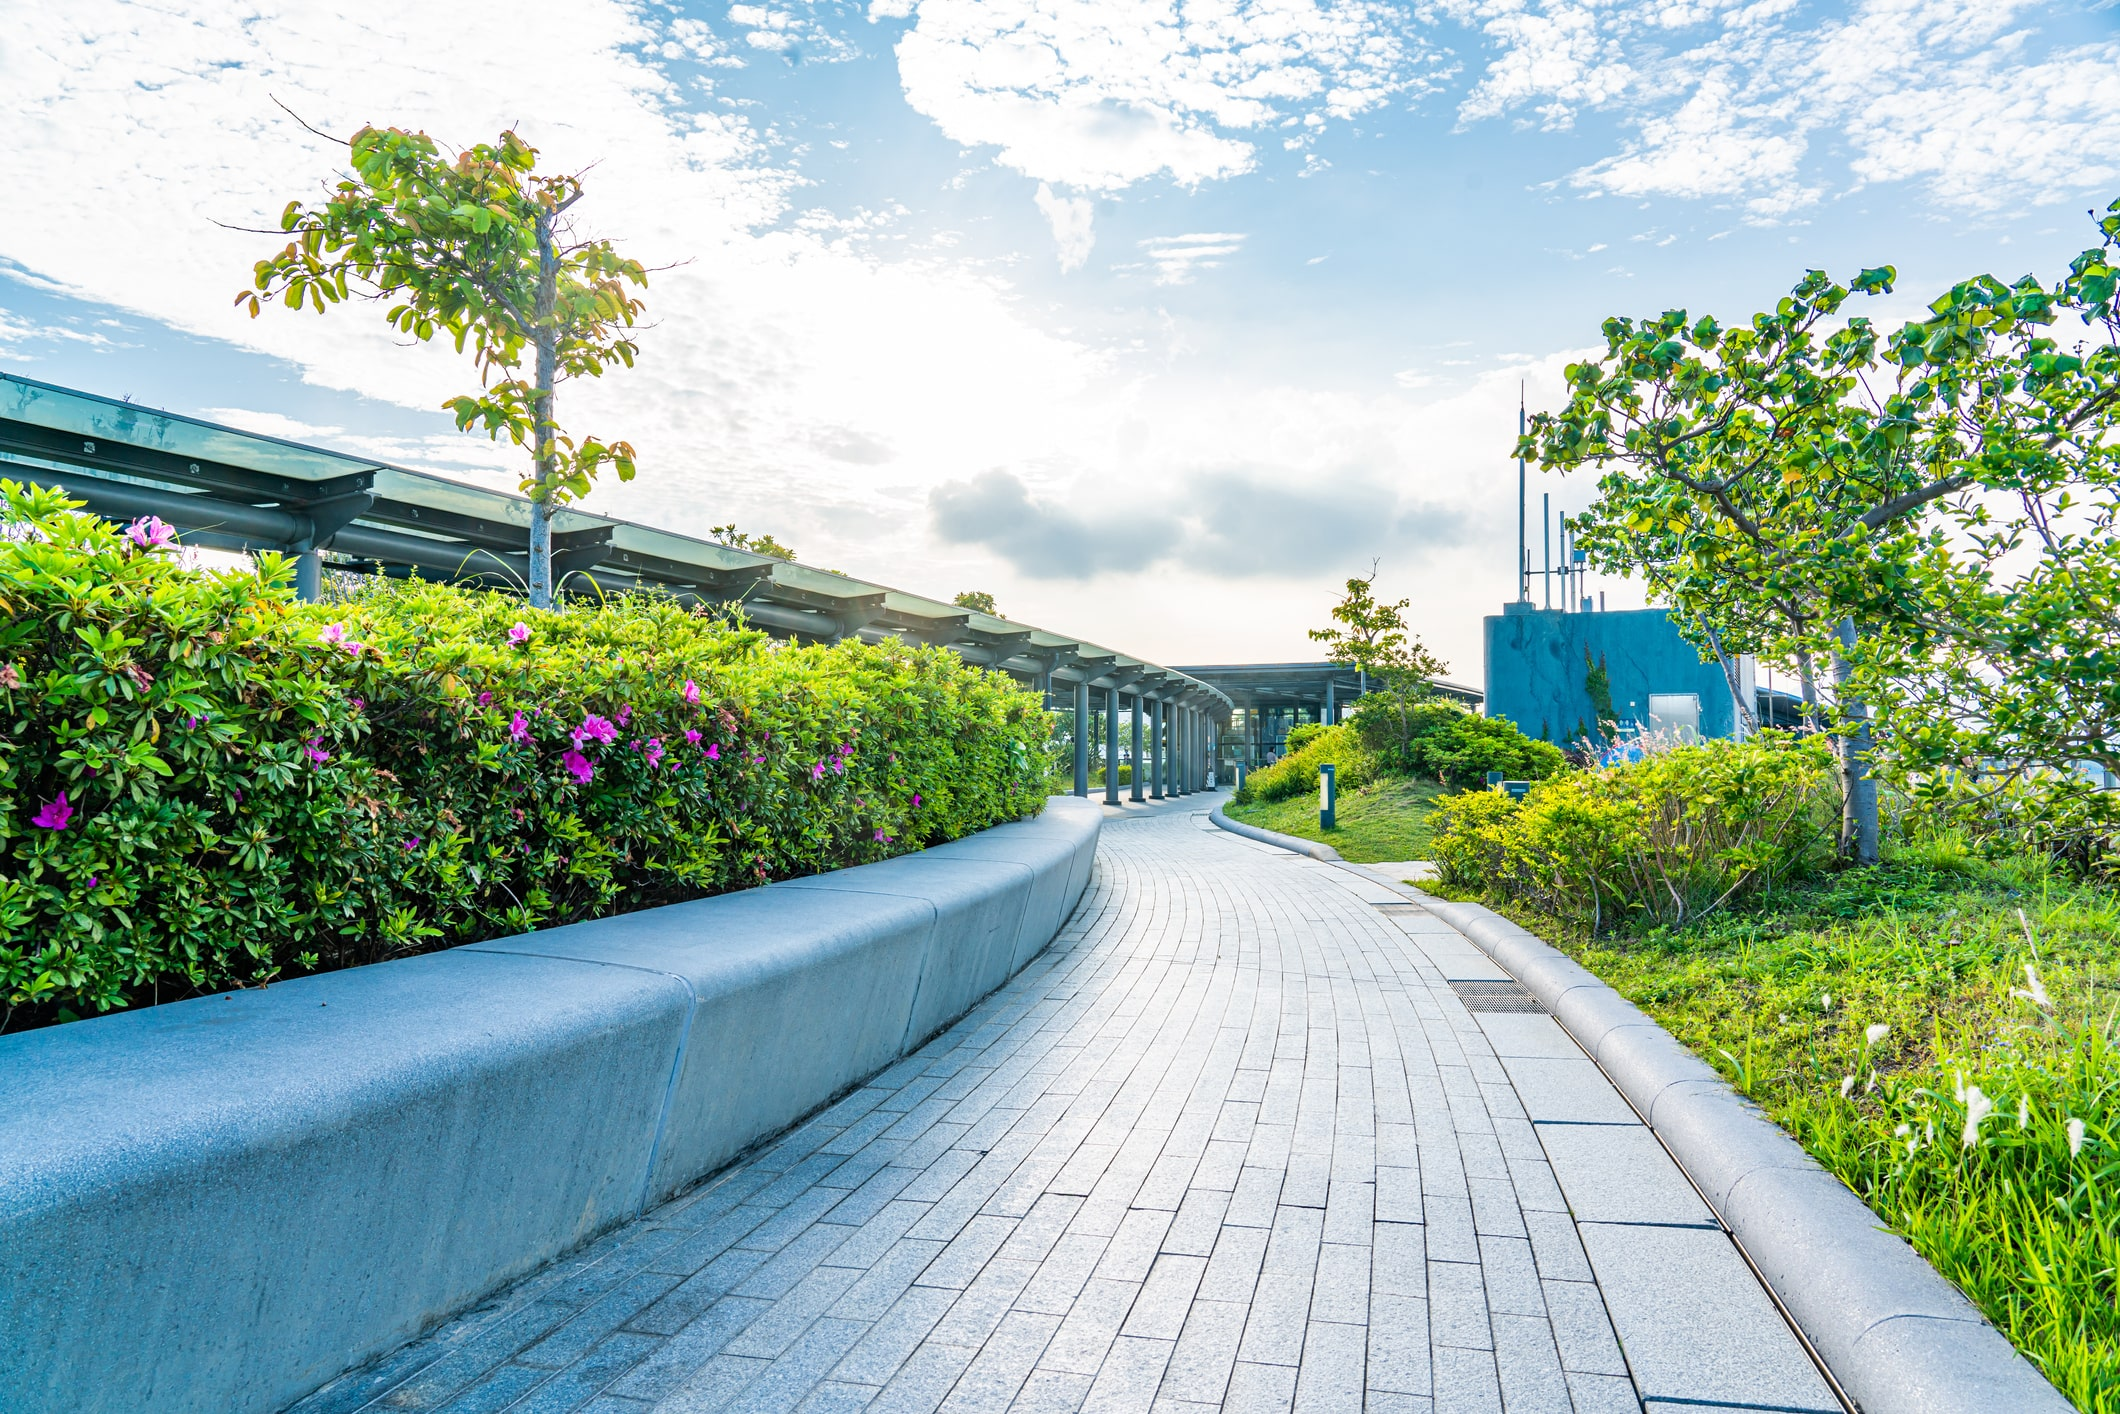 Walking path surrounded by flowers, other plants and trees.